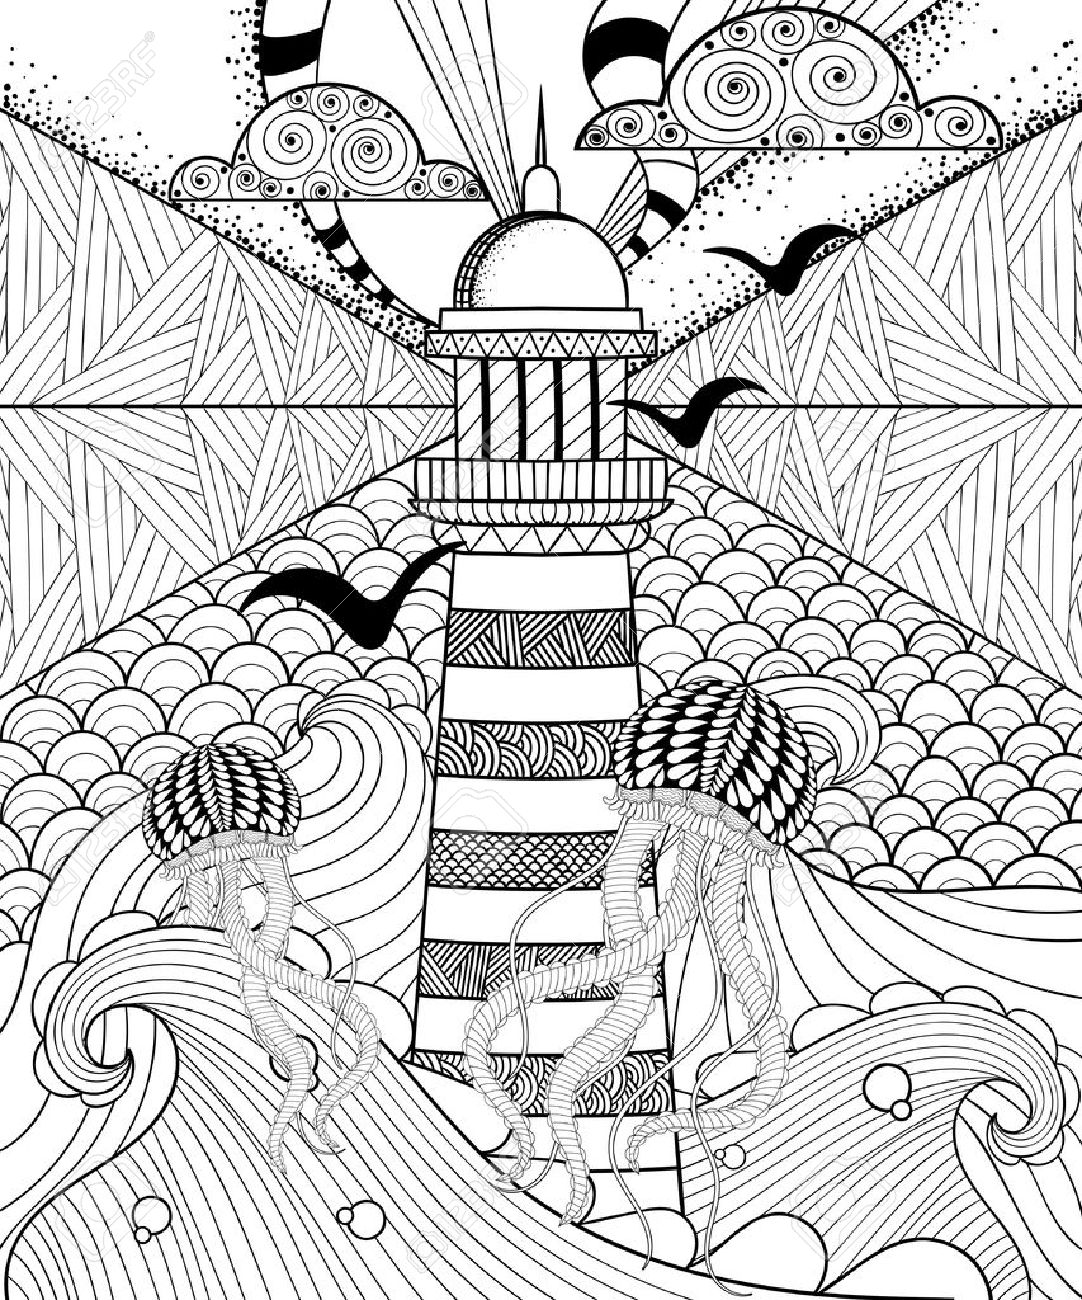 Hand Drawn Adult Coloring Page, Artistically Sea With Ethnic ...